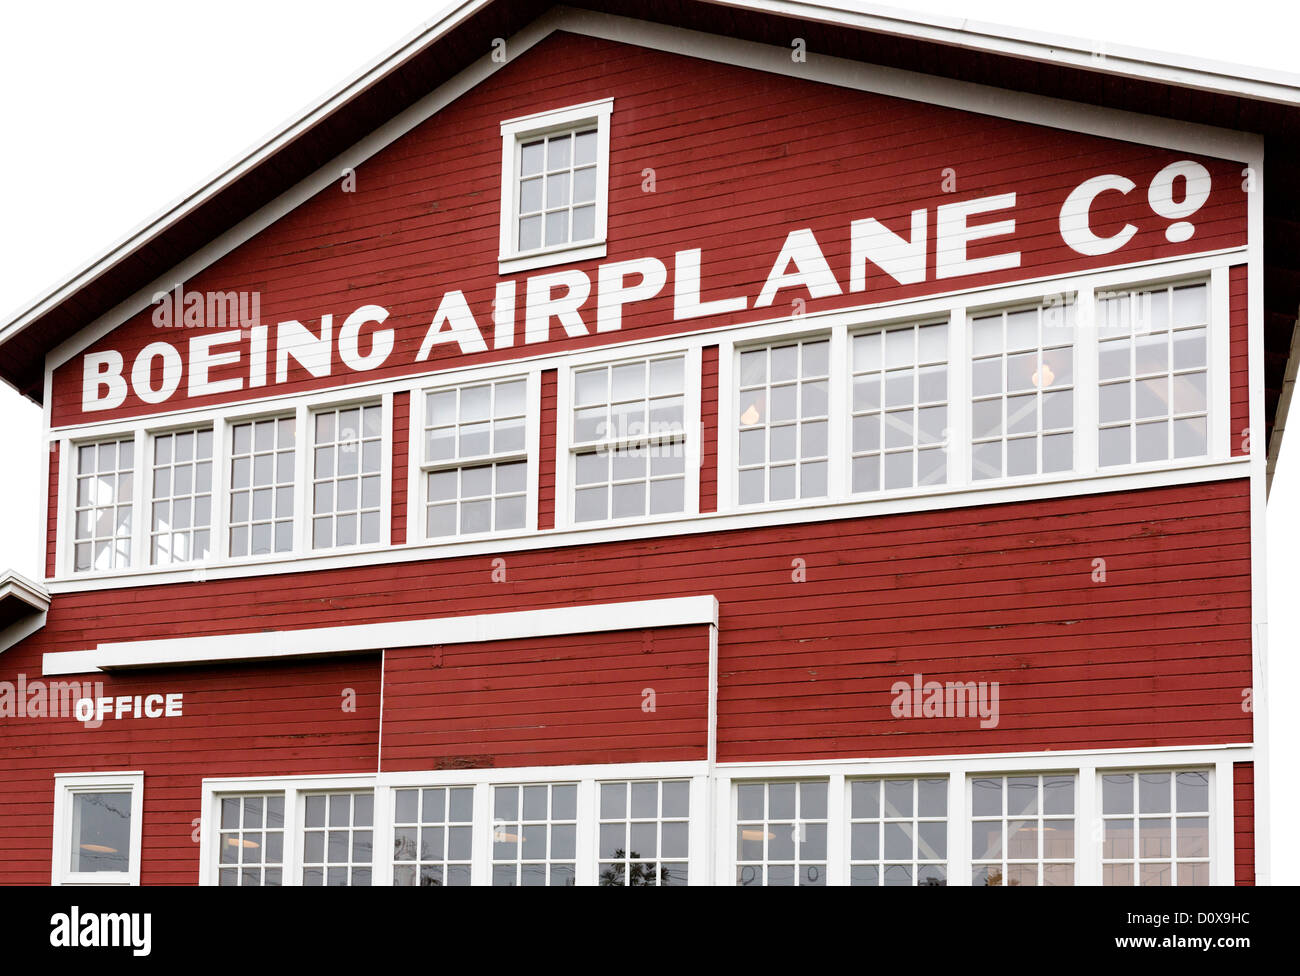 Exterior of the Red Barn, the original Boeing manufacturing plant, The Museum of Flight, Seattle, Washington, USA - Stock Image